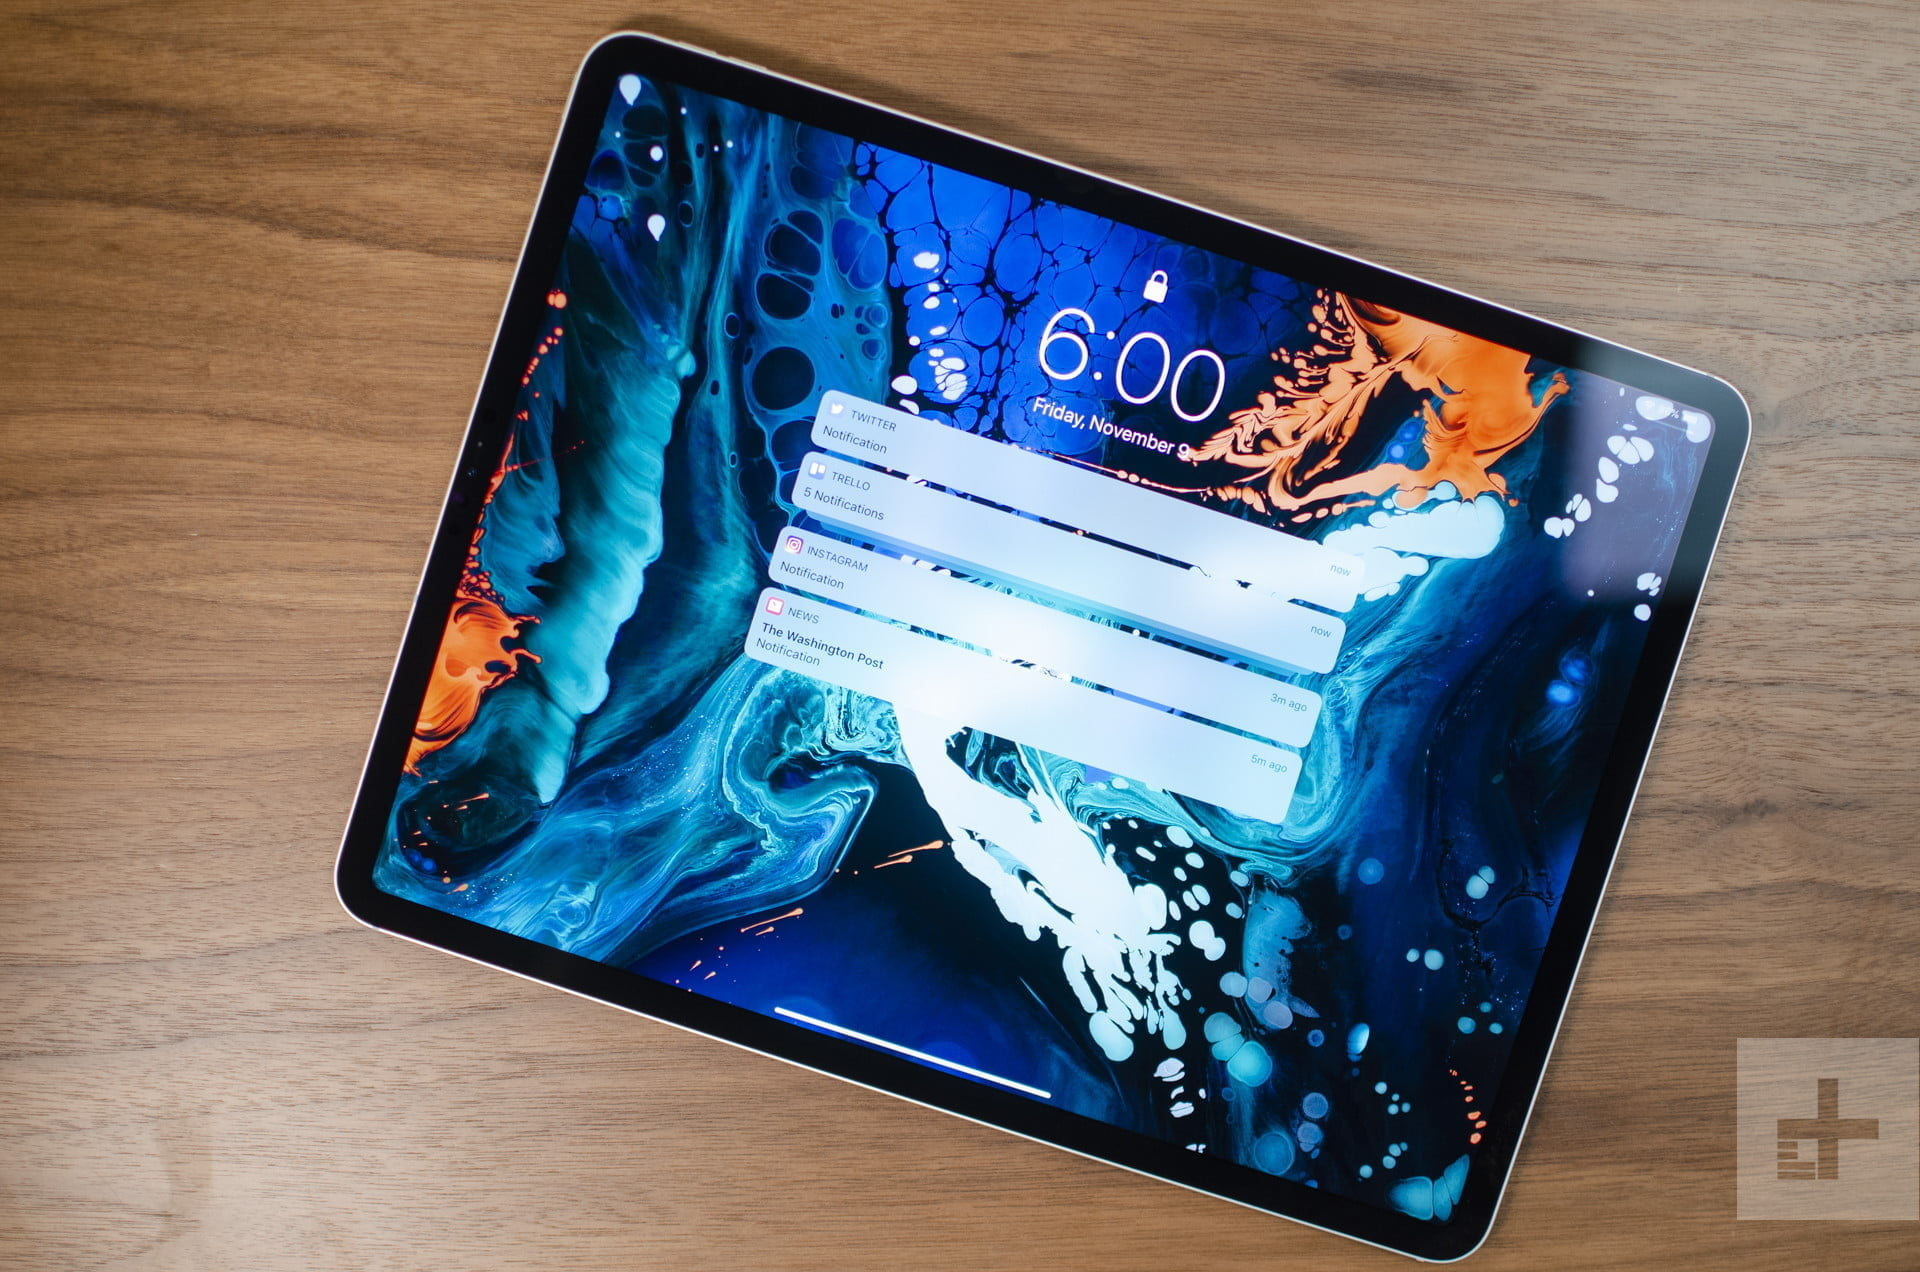 Image result for The best Black Friday iPad deals in 2019